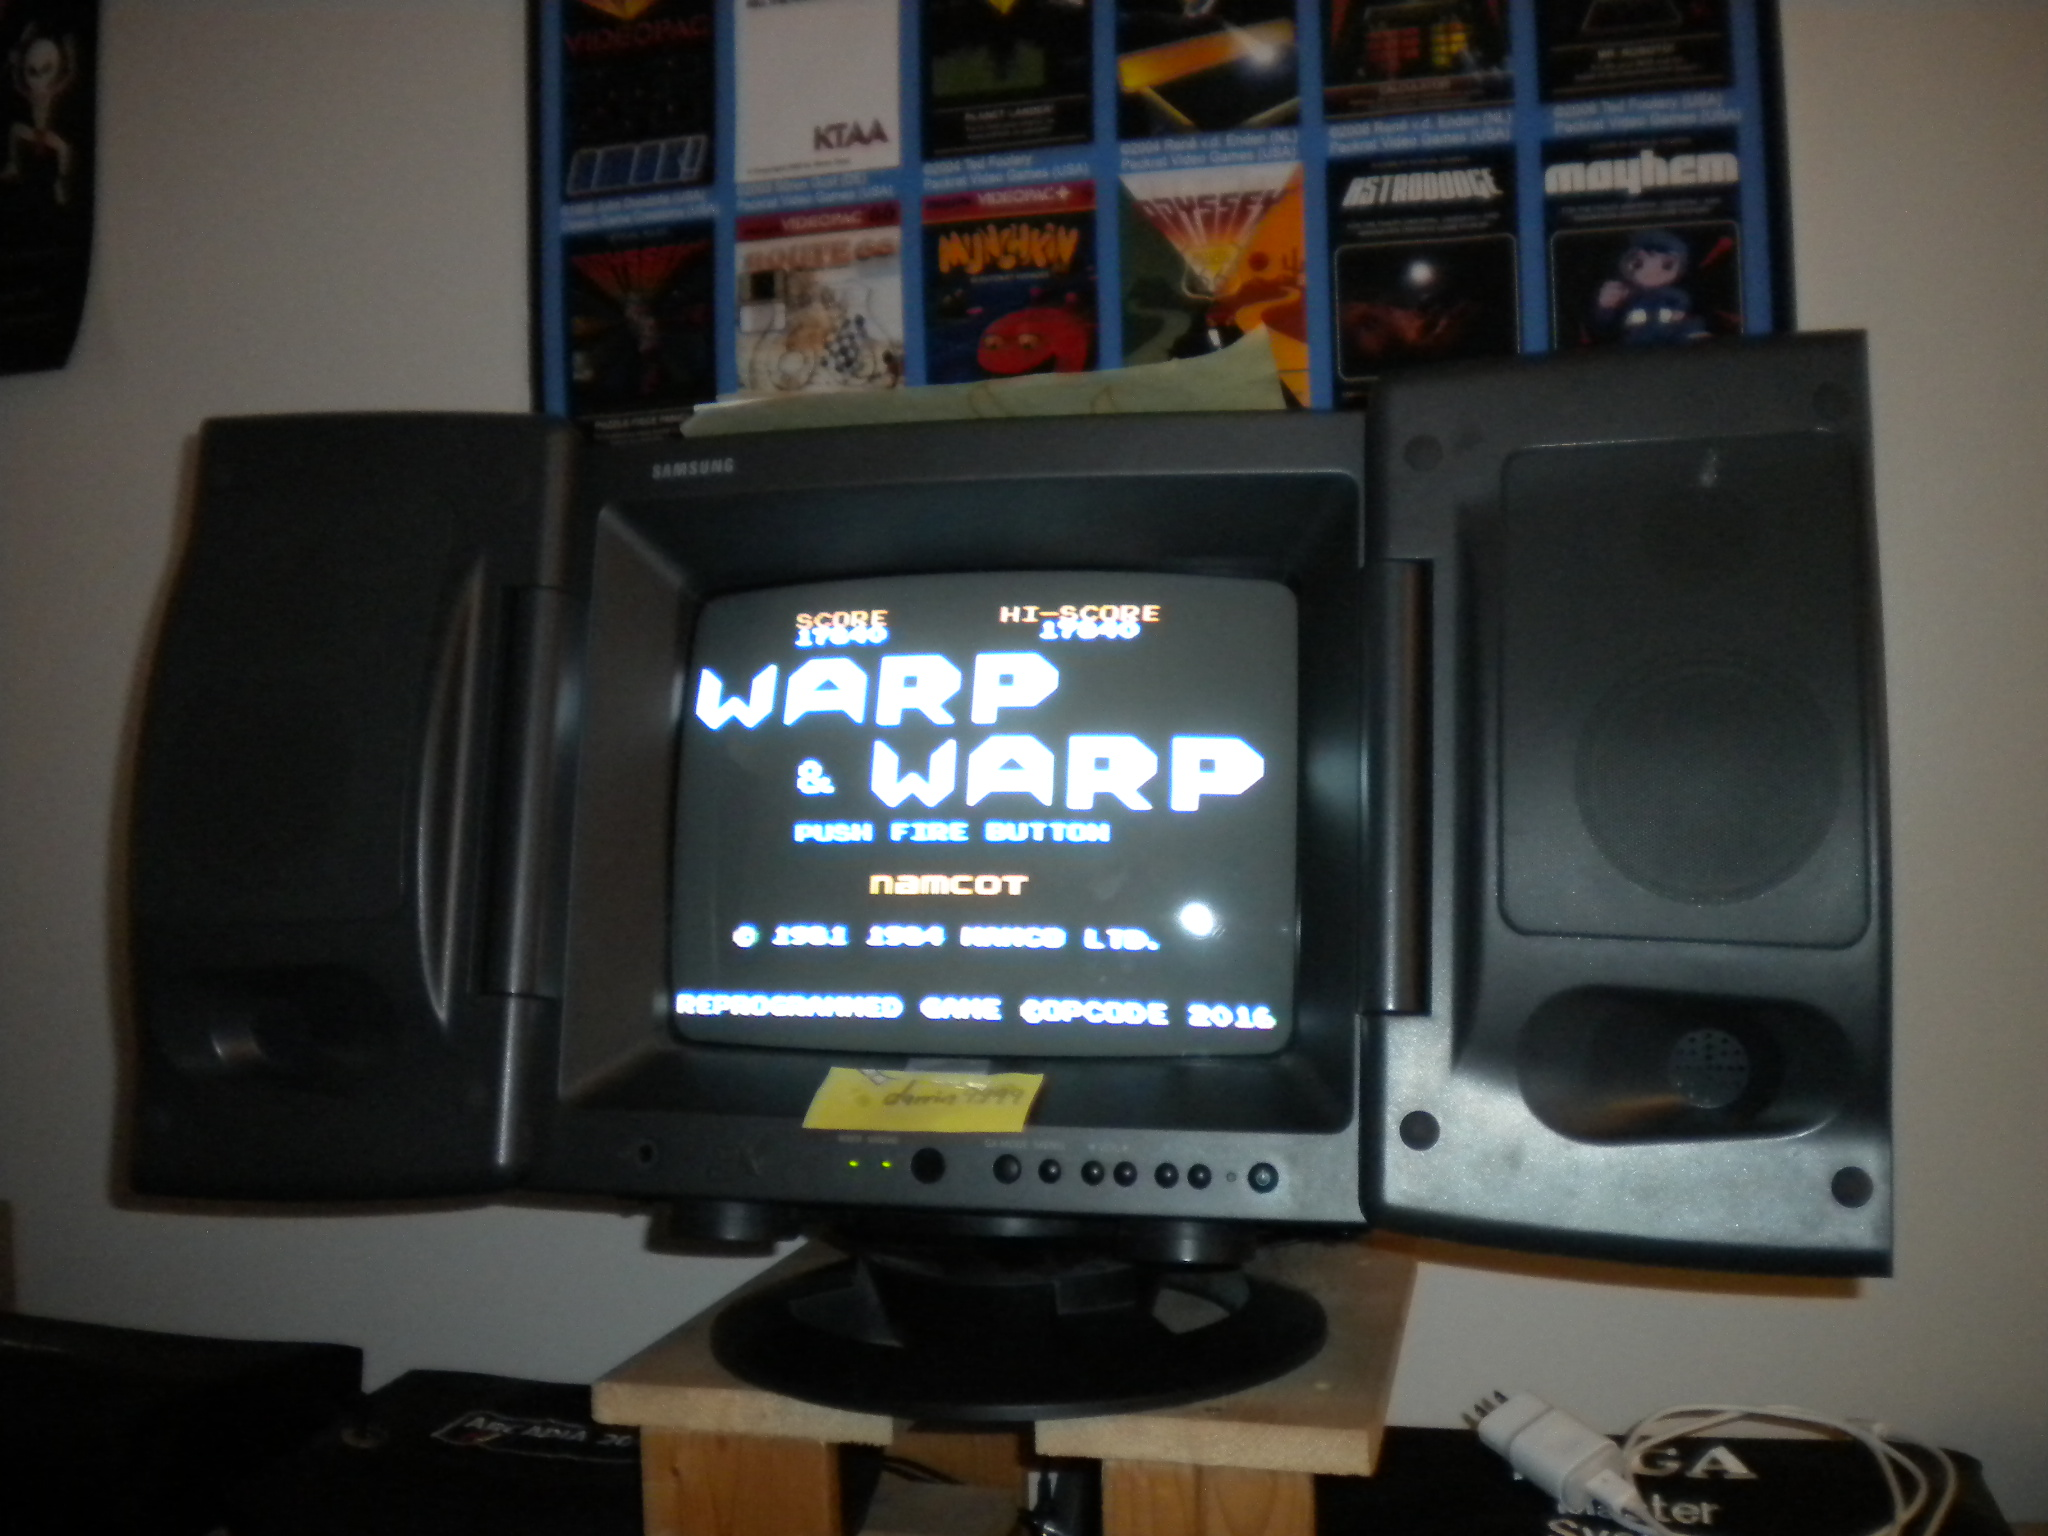 darrin9999: Warp & Warp (Colecovision) 17,840 points on 2017-07-28 17:46:31